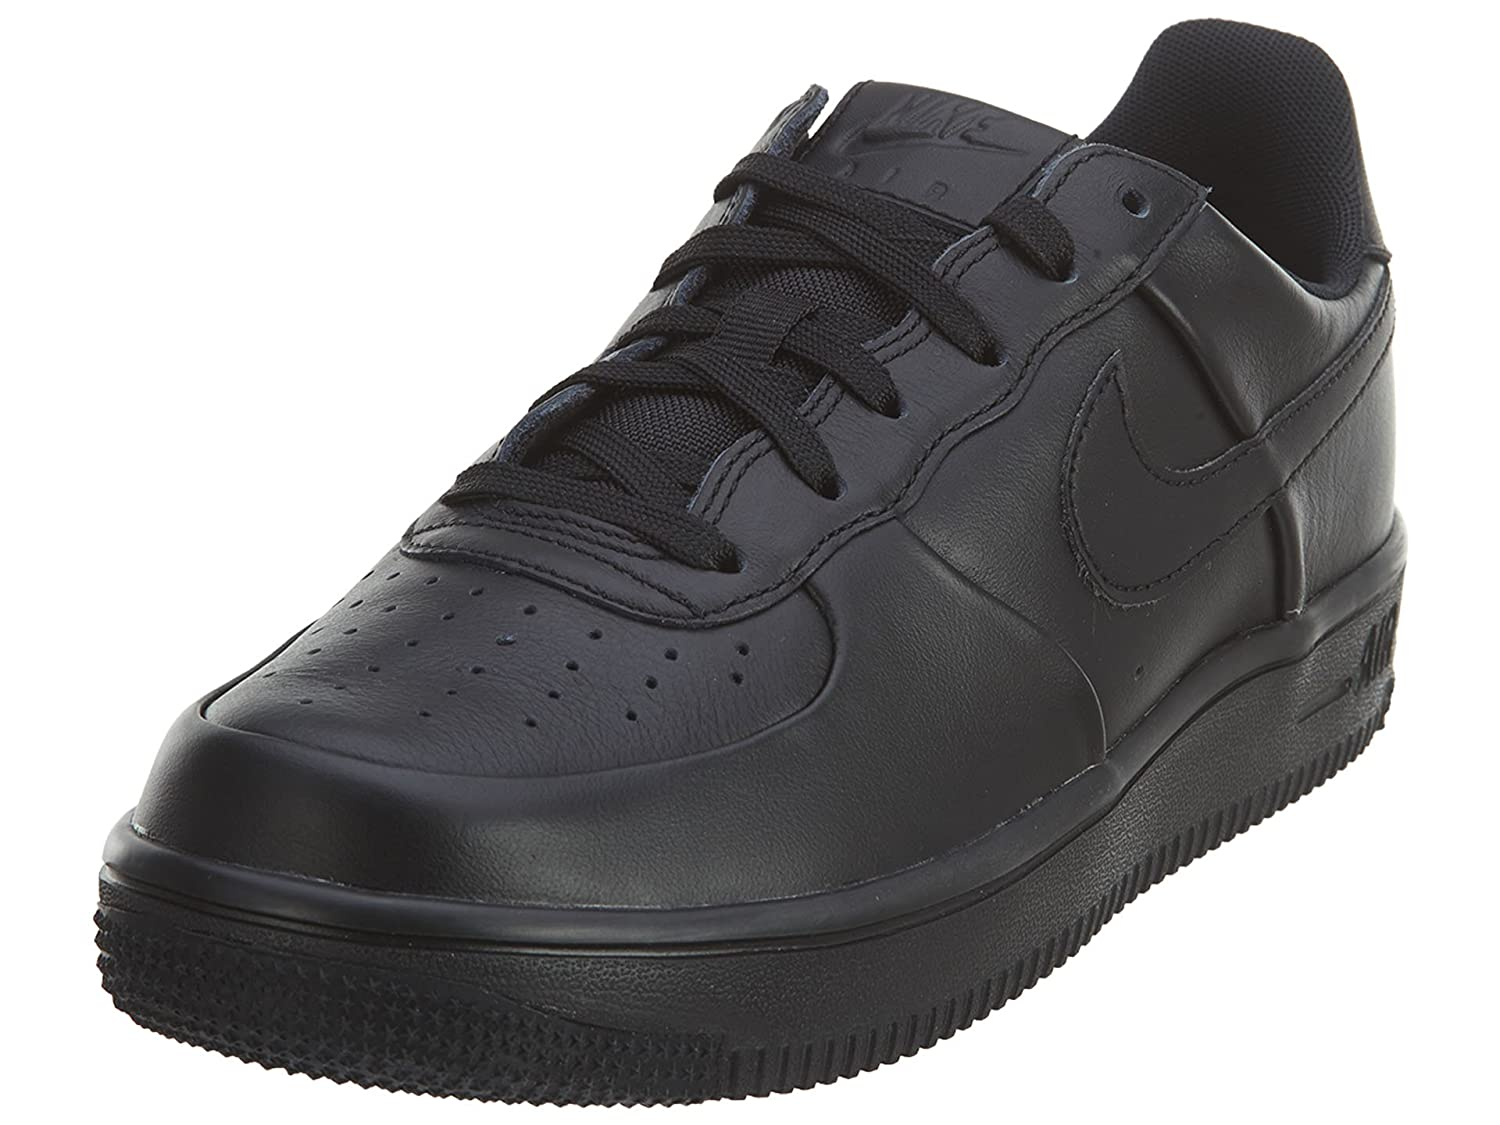 Amazon.com | Nike Air Force 1 Ultraforce Big Kids Style: 845128-003 Size: 6.5 Black/Black-Black | Sneakers